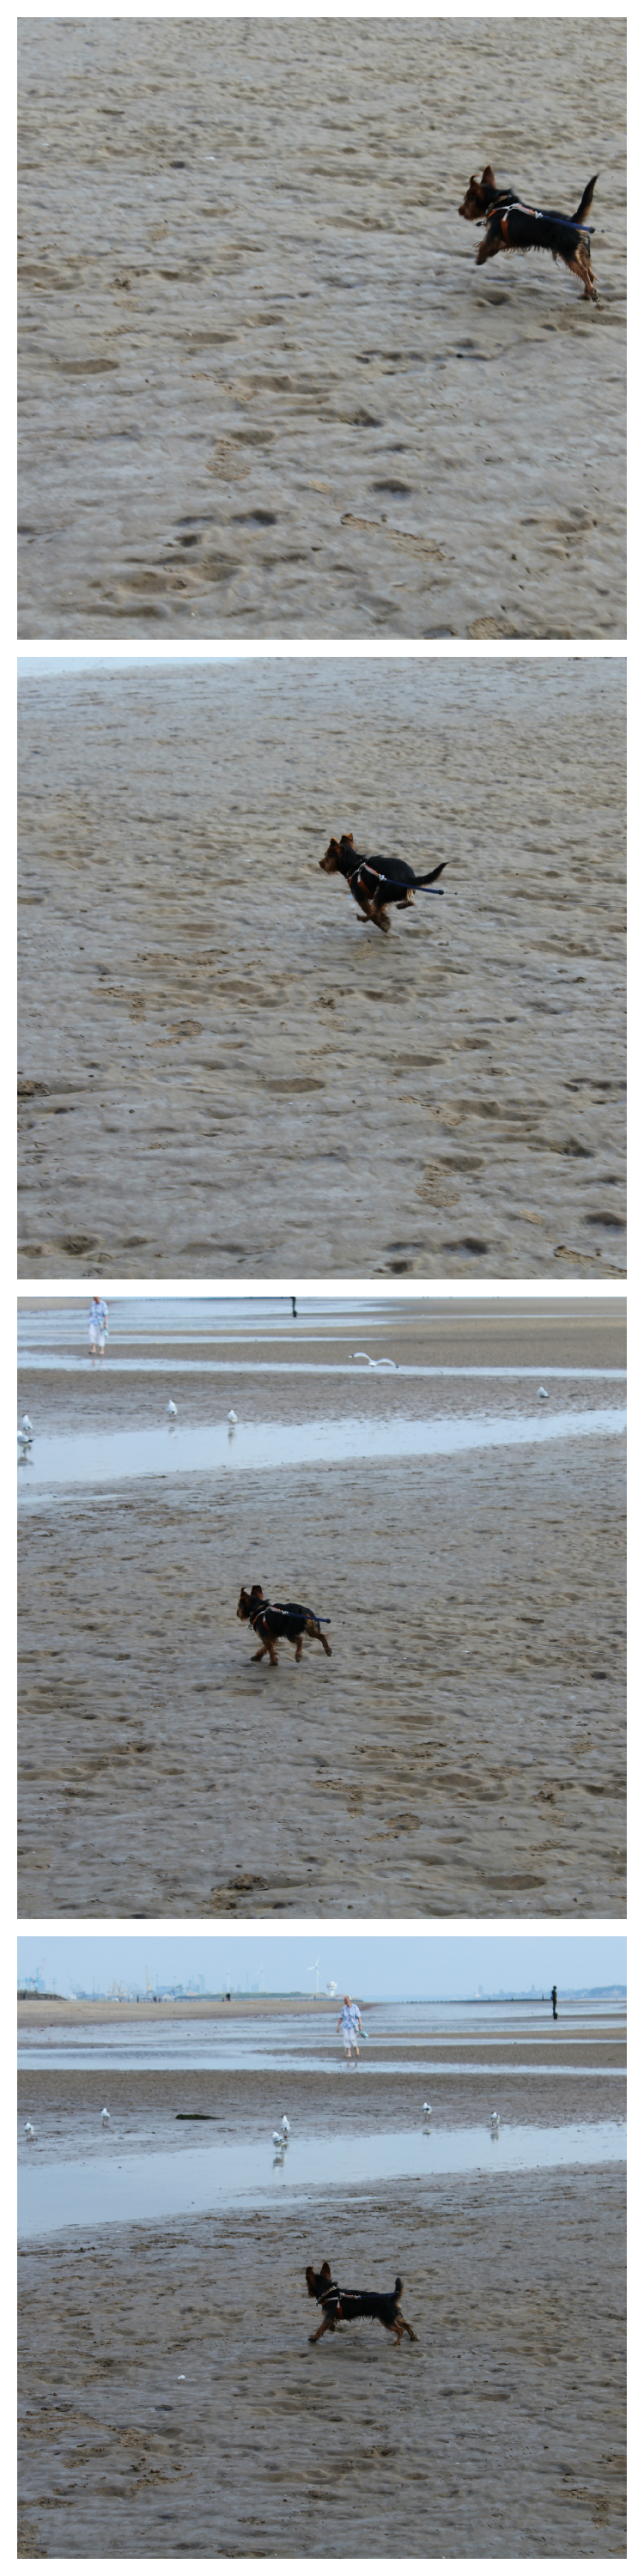 jarvis_running_on_the_beach